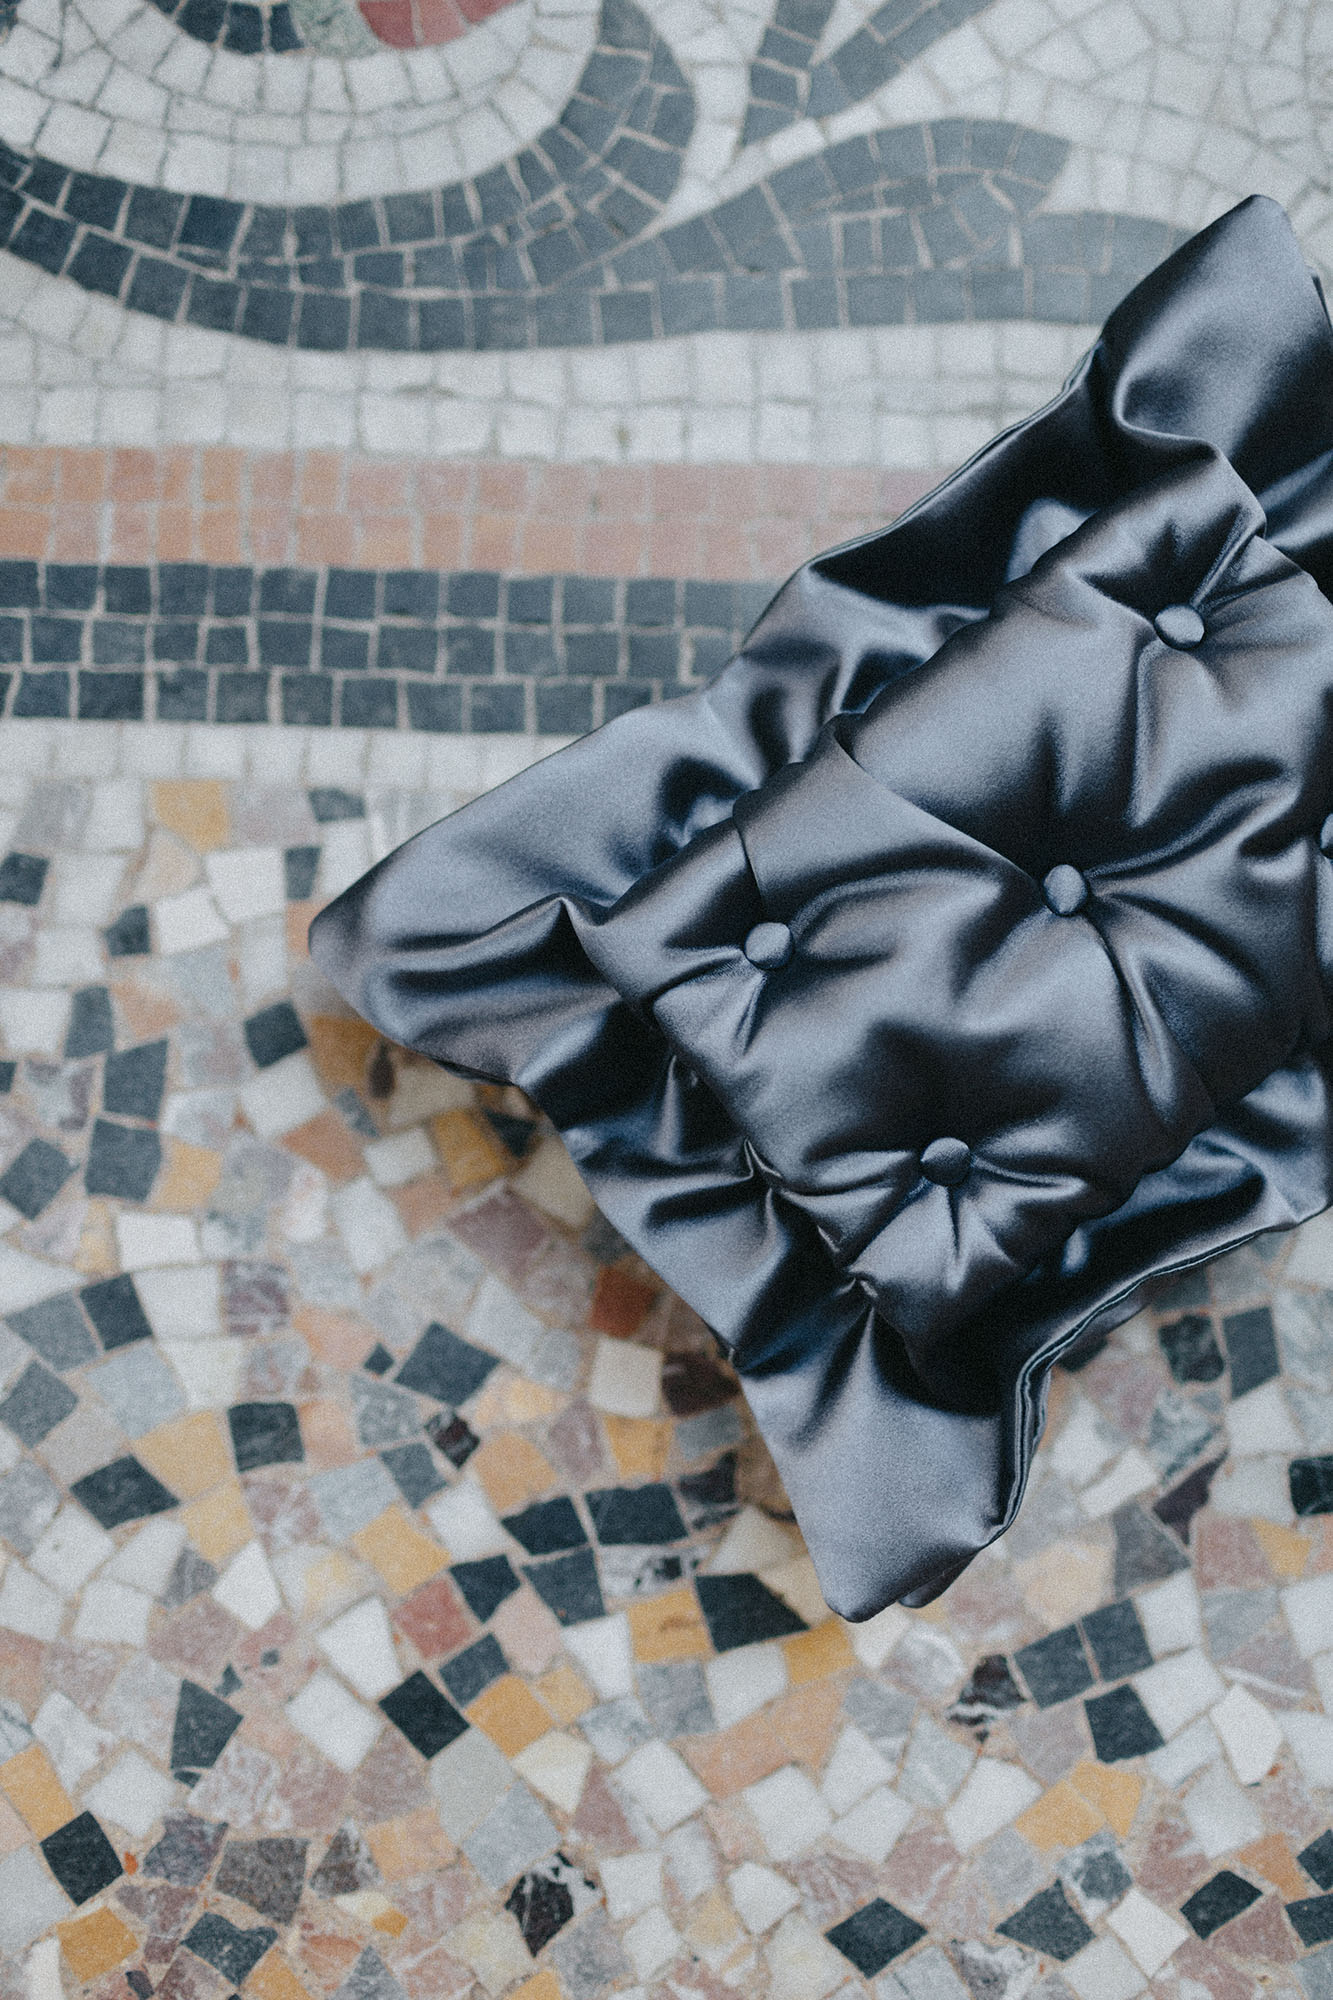 Laimushka dark grey quilted silk pillow clutch bag on the floor in Paris, Palais Royal